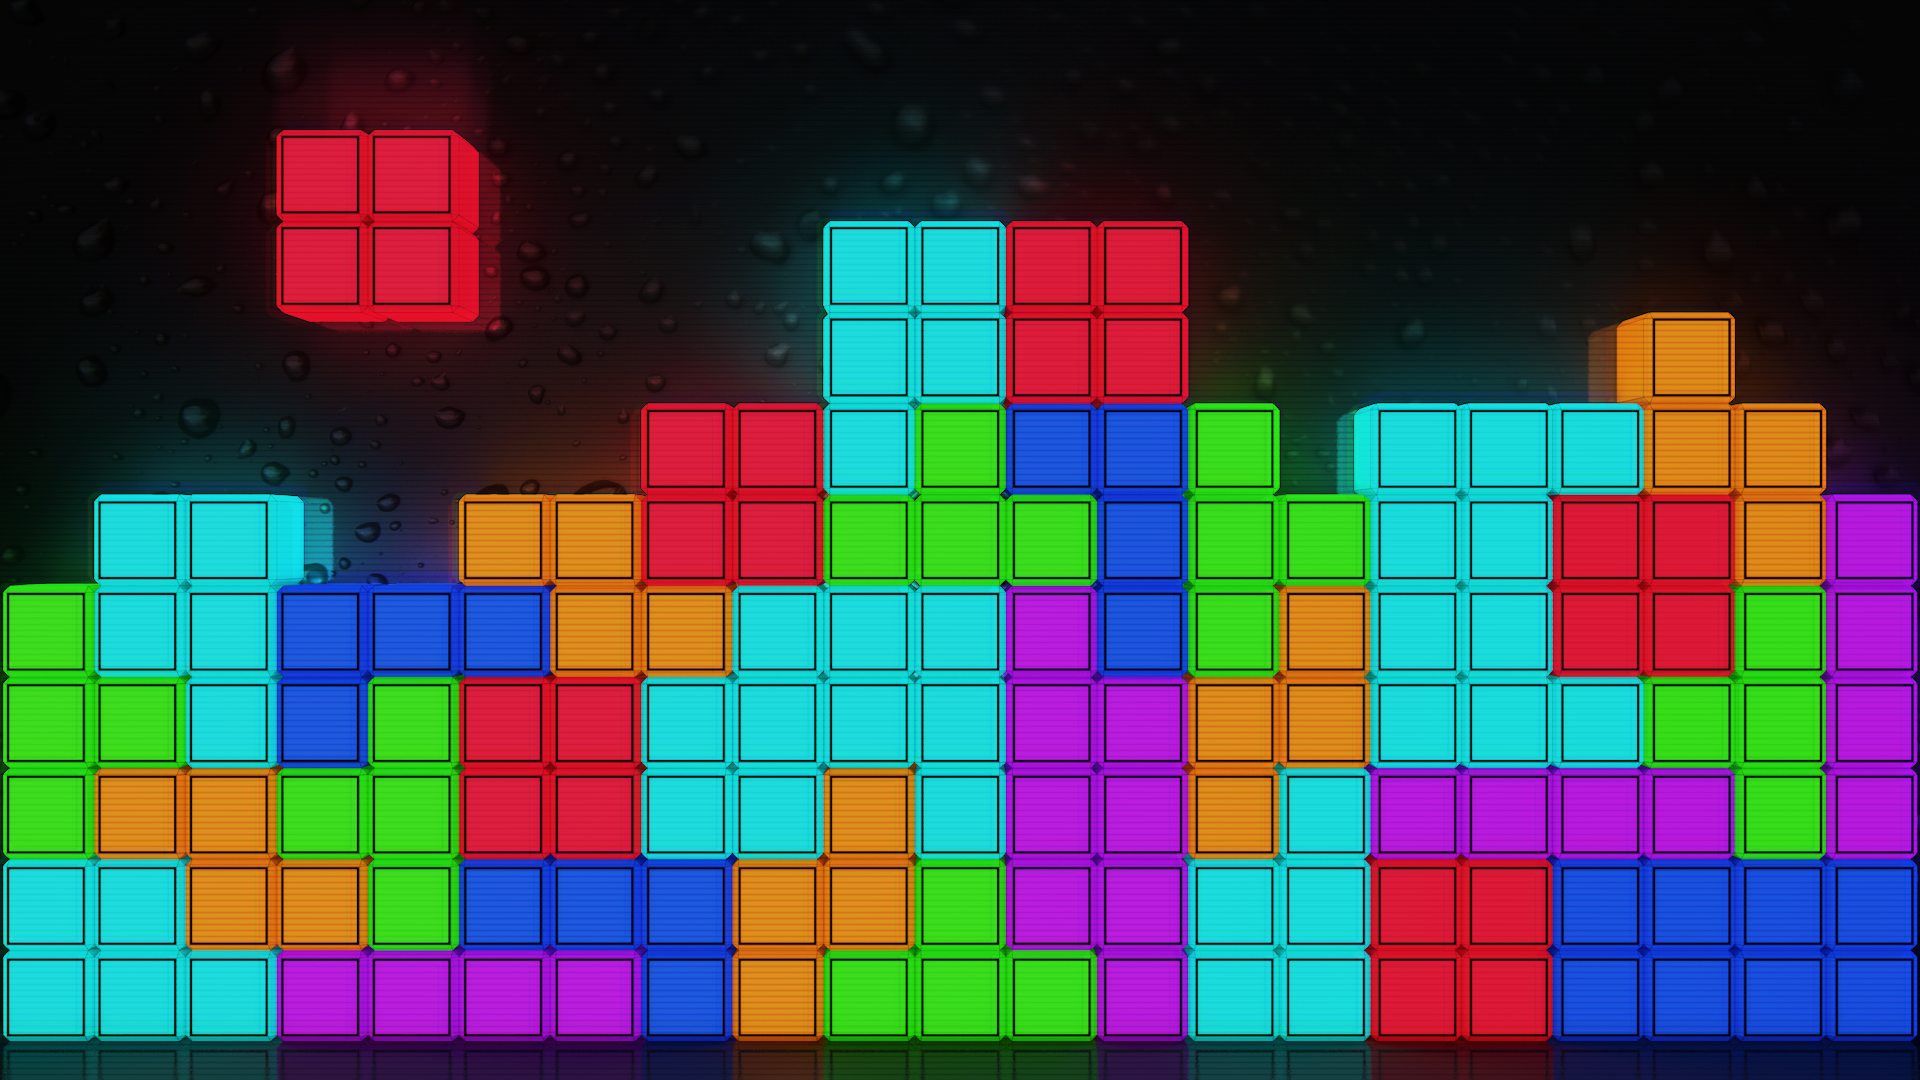 General 1920x1080 Tetris VHS abstract minimalism colorful video games video game art 3D Blocks